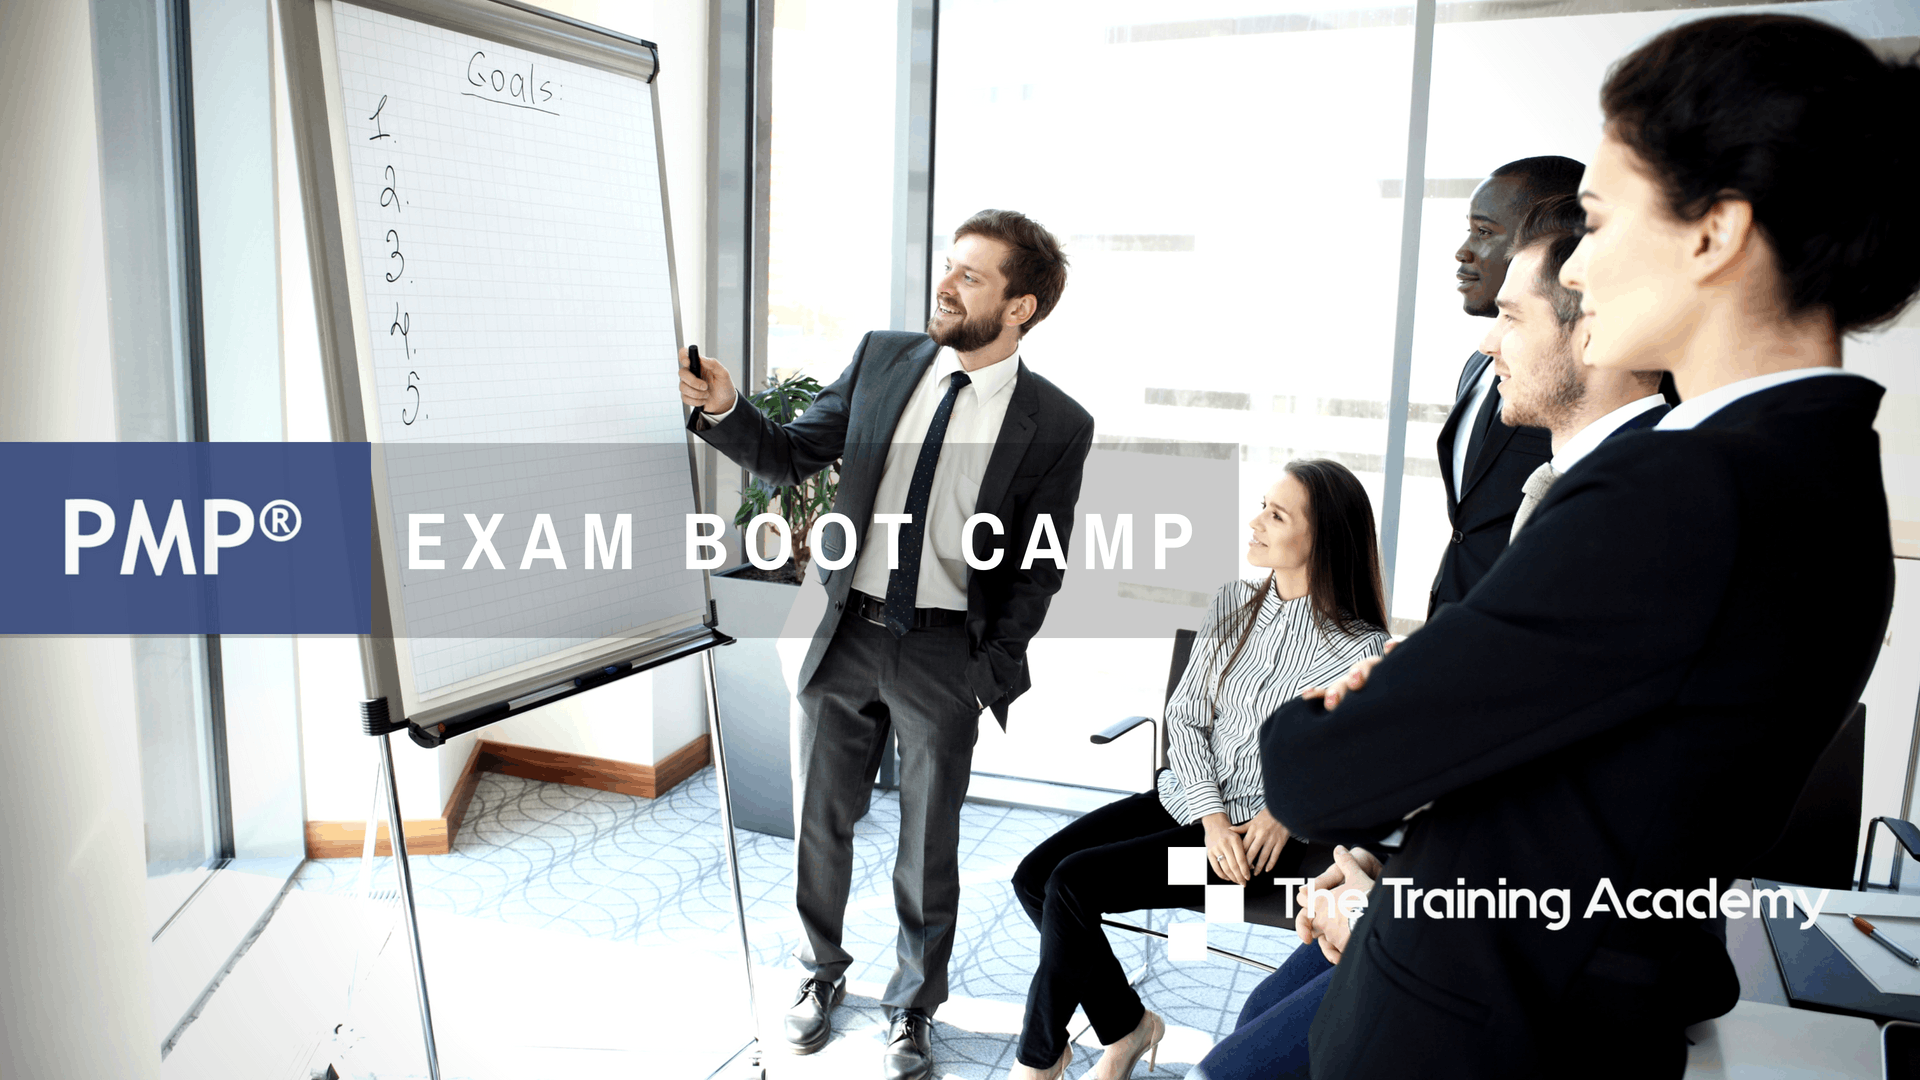 PMP® Exam Bootcamp, Ottawa